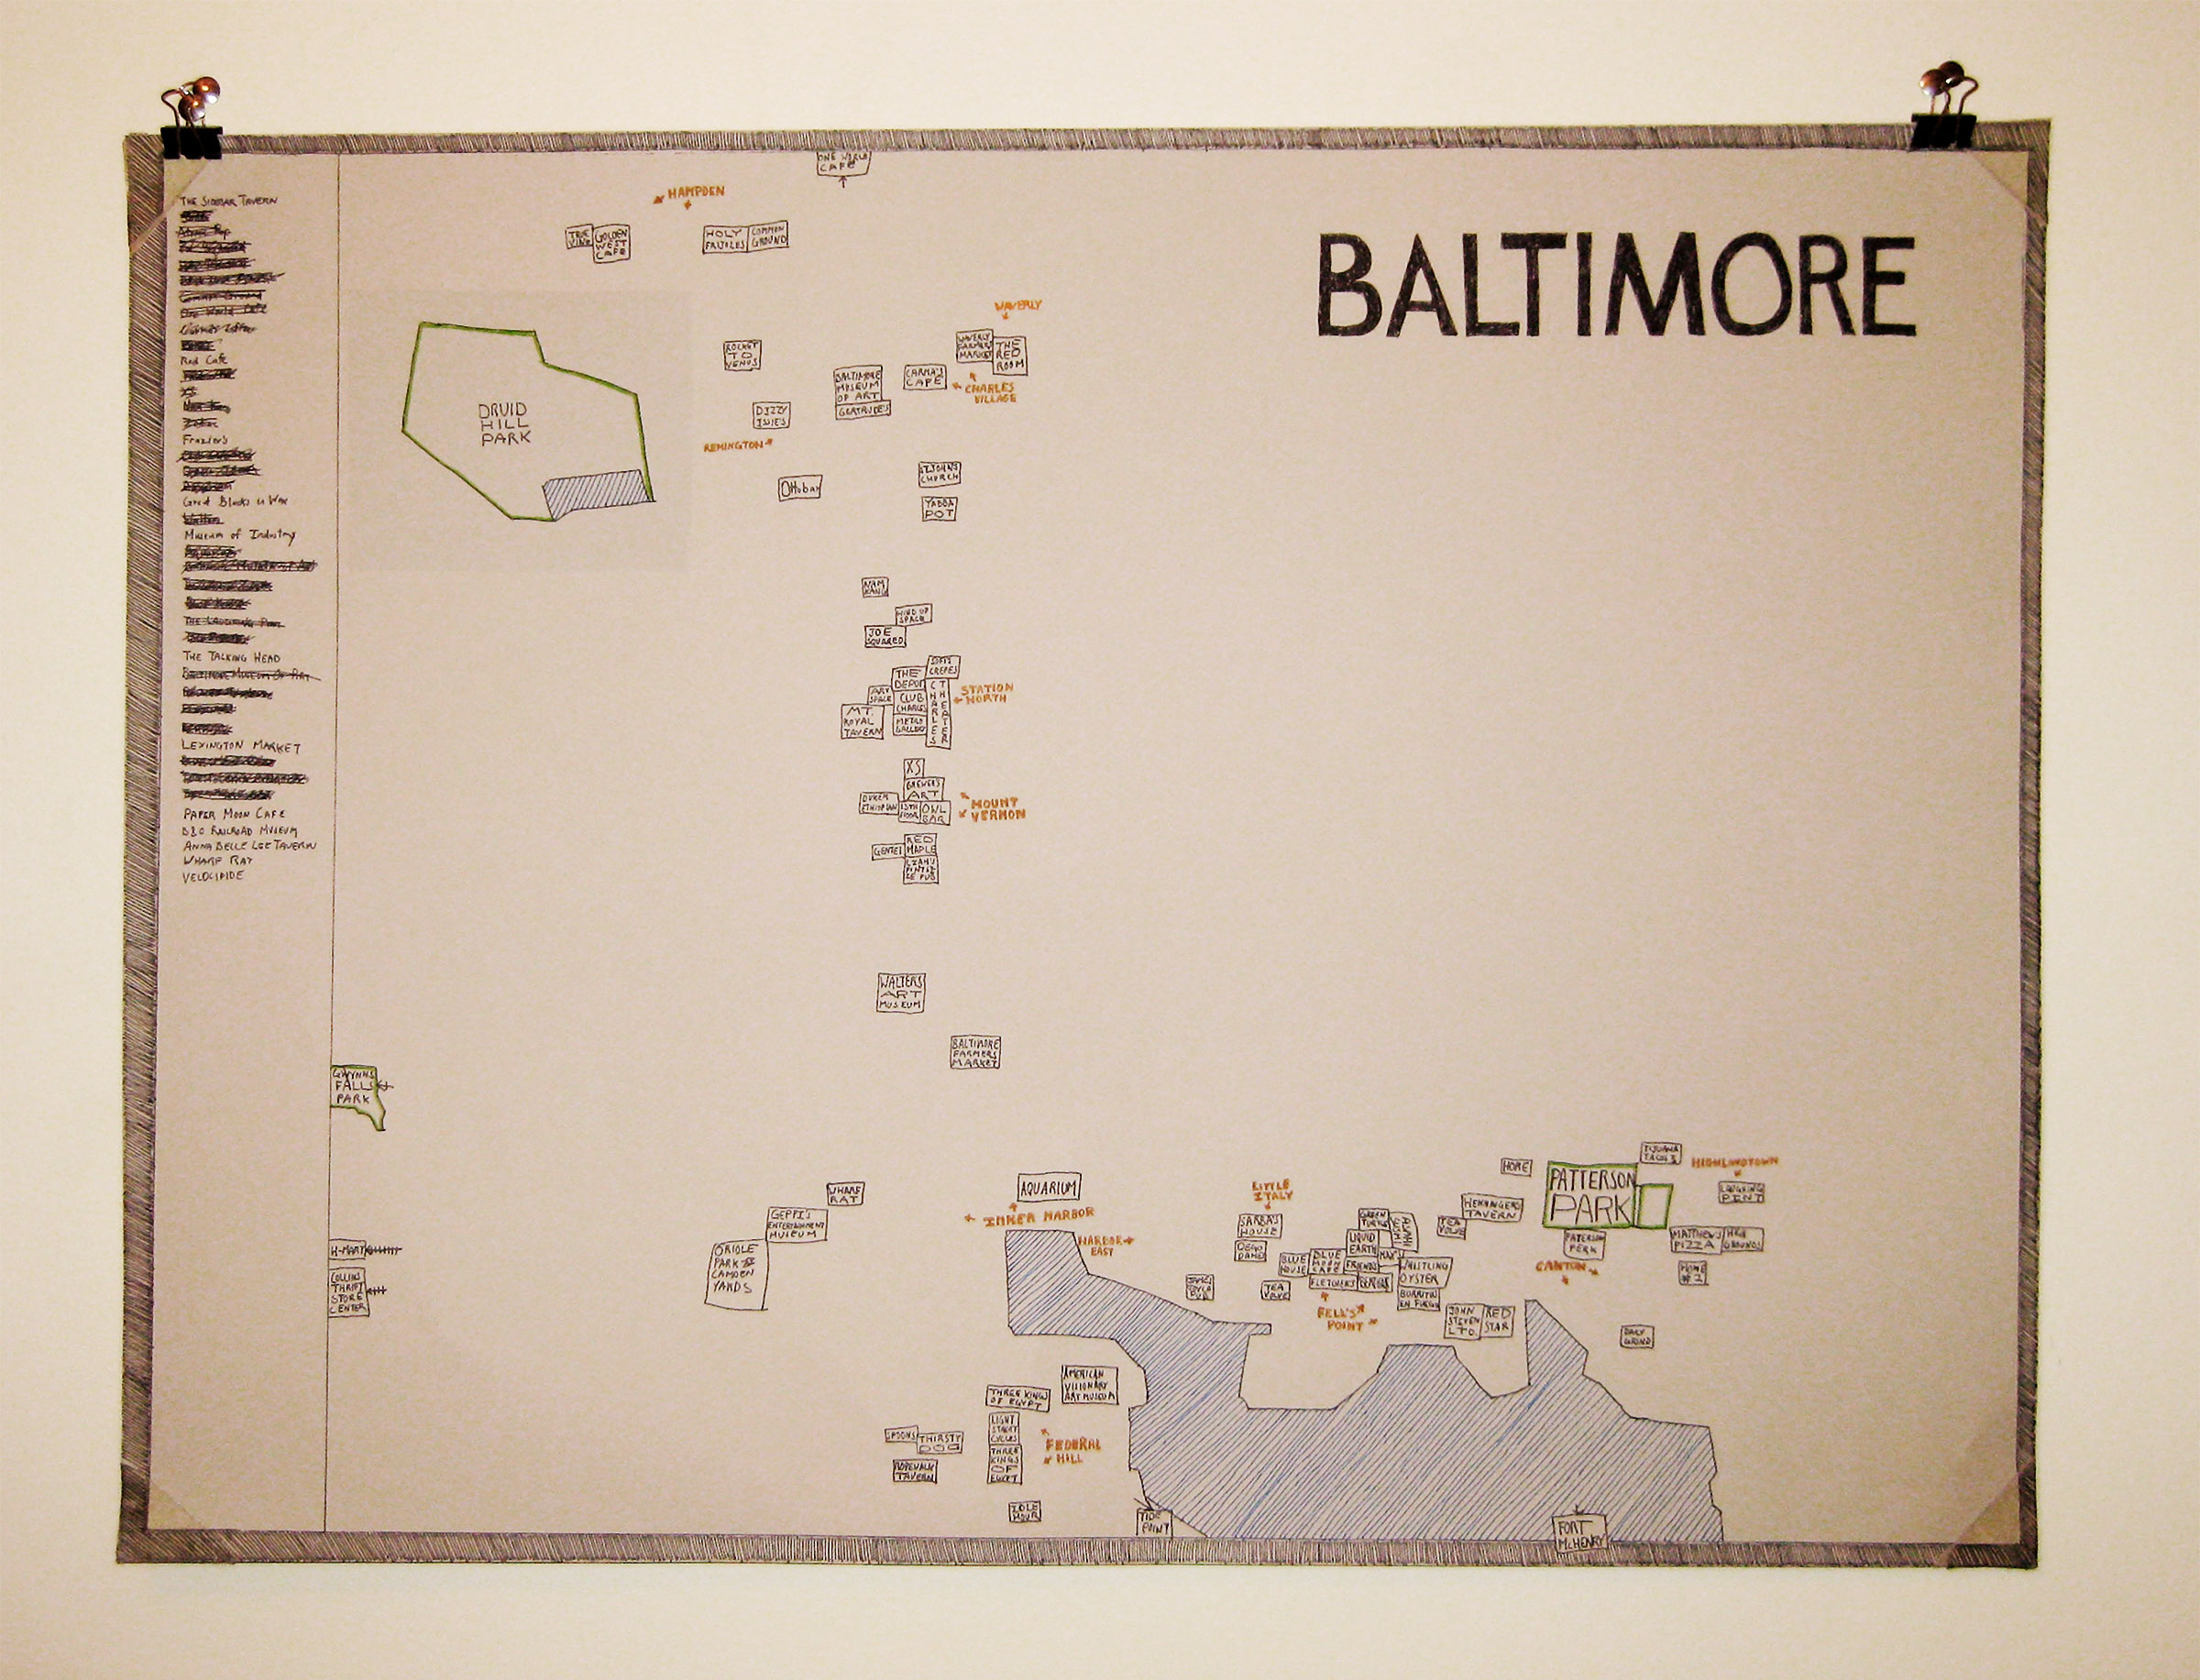 hand drawn map of baltimore showing different locations as small rectangles